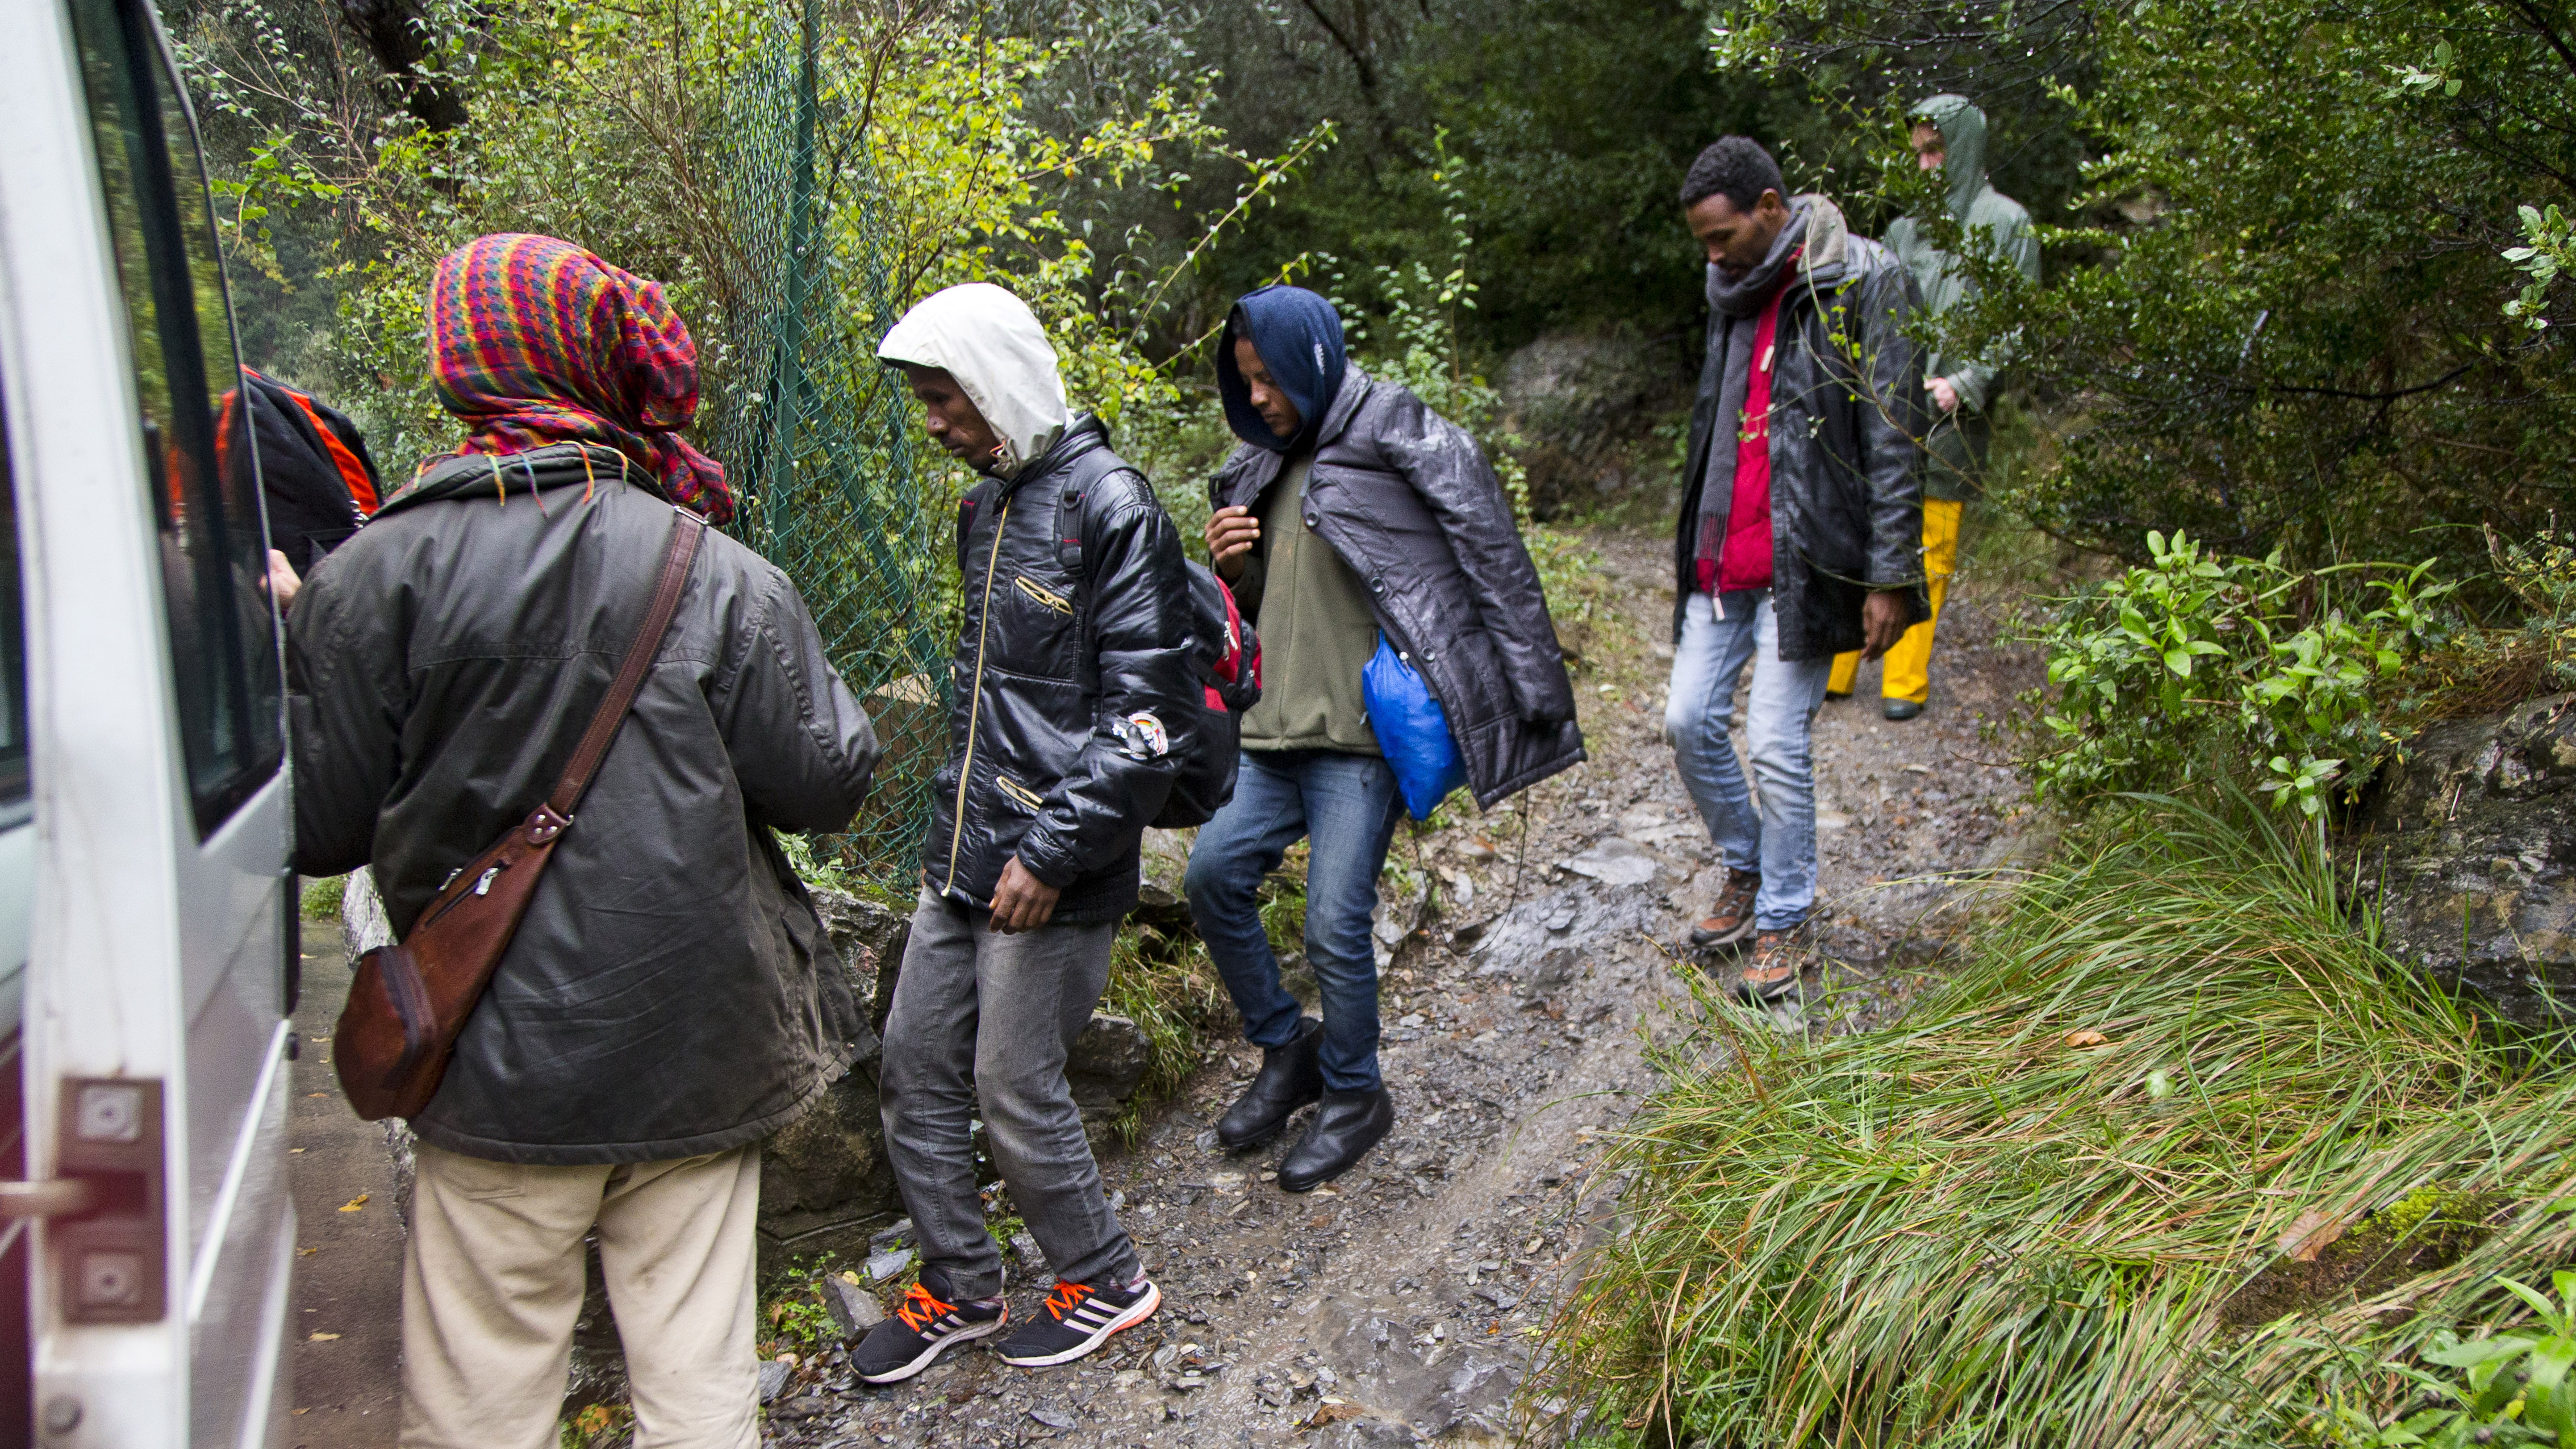 Alpine migrant route into France a dead-end for many